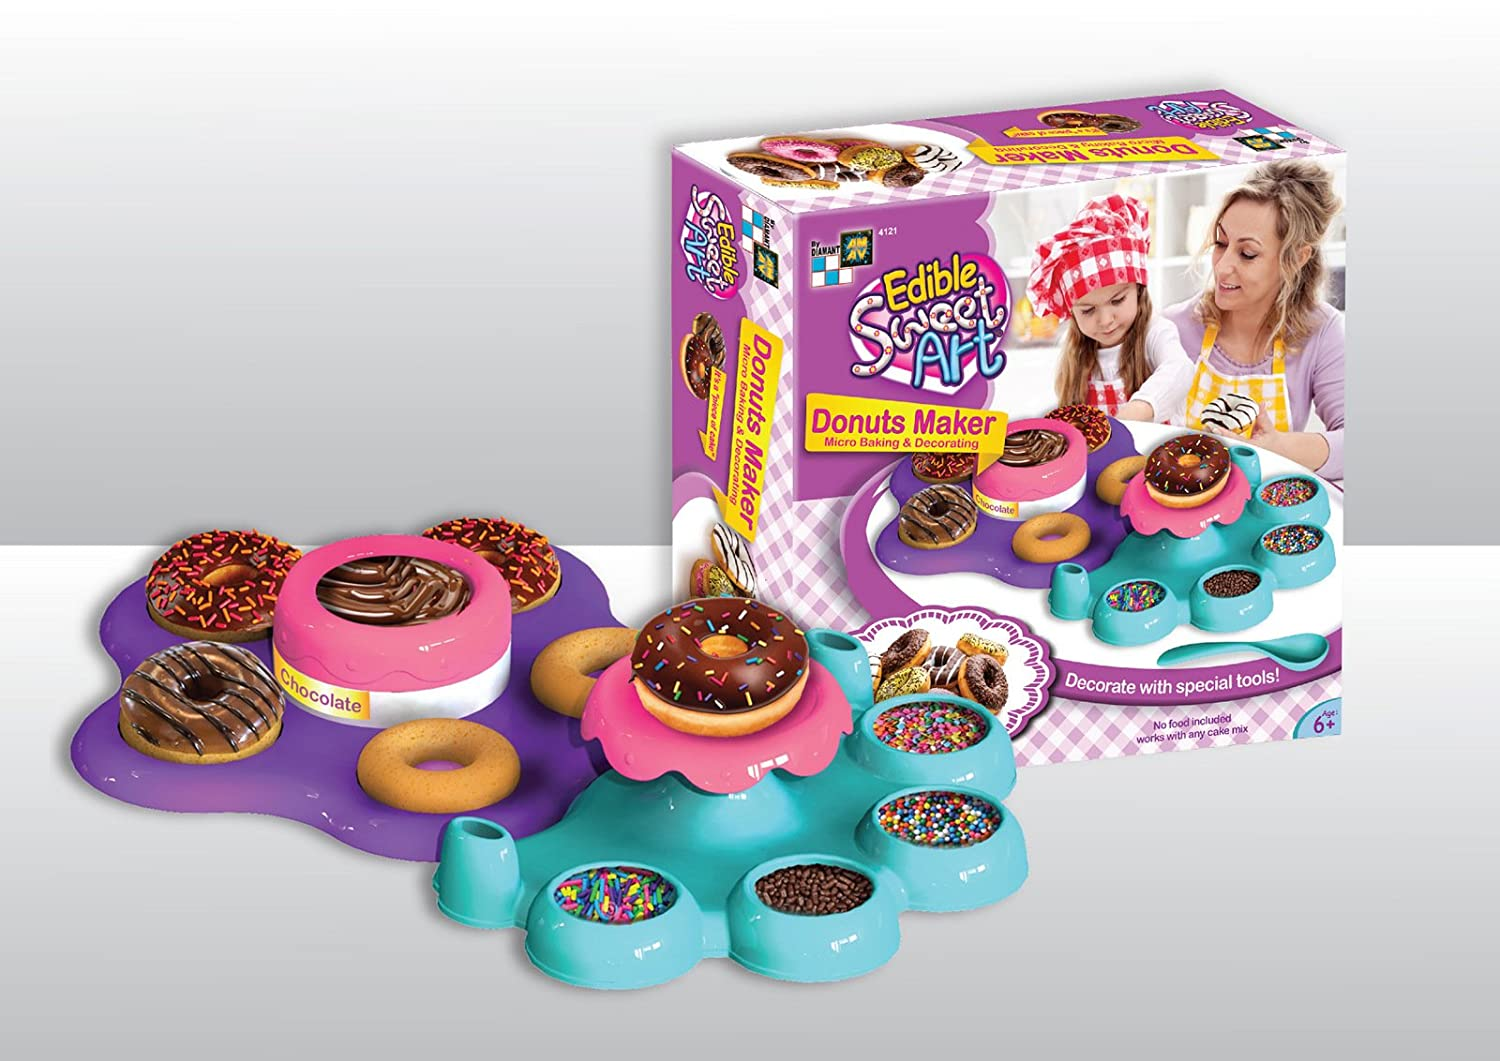 Donut Maker Activity Set Using Microwave Baking with All Utilities Included AMAV Toys Make Your Own Delicious Donuts Edible Sweet Art for Kids